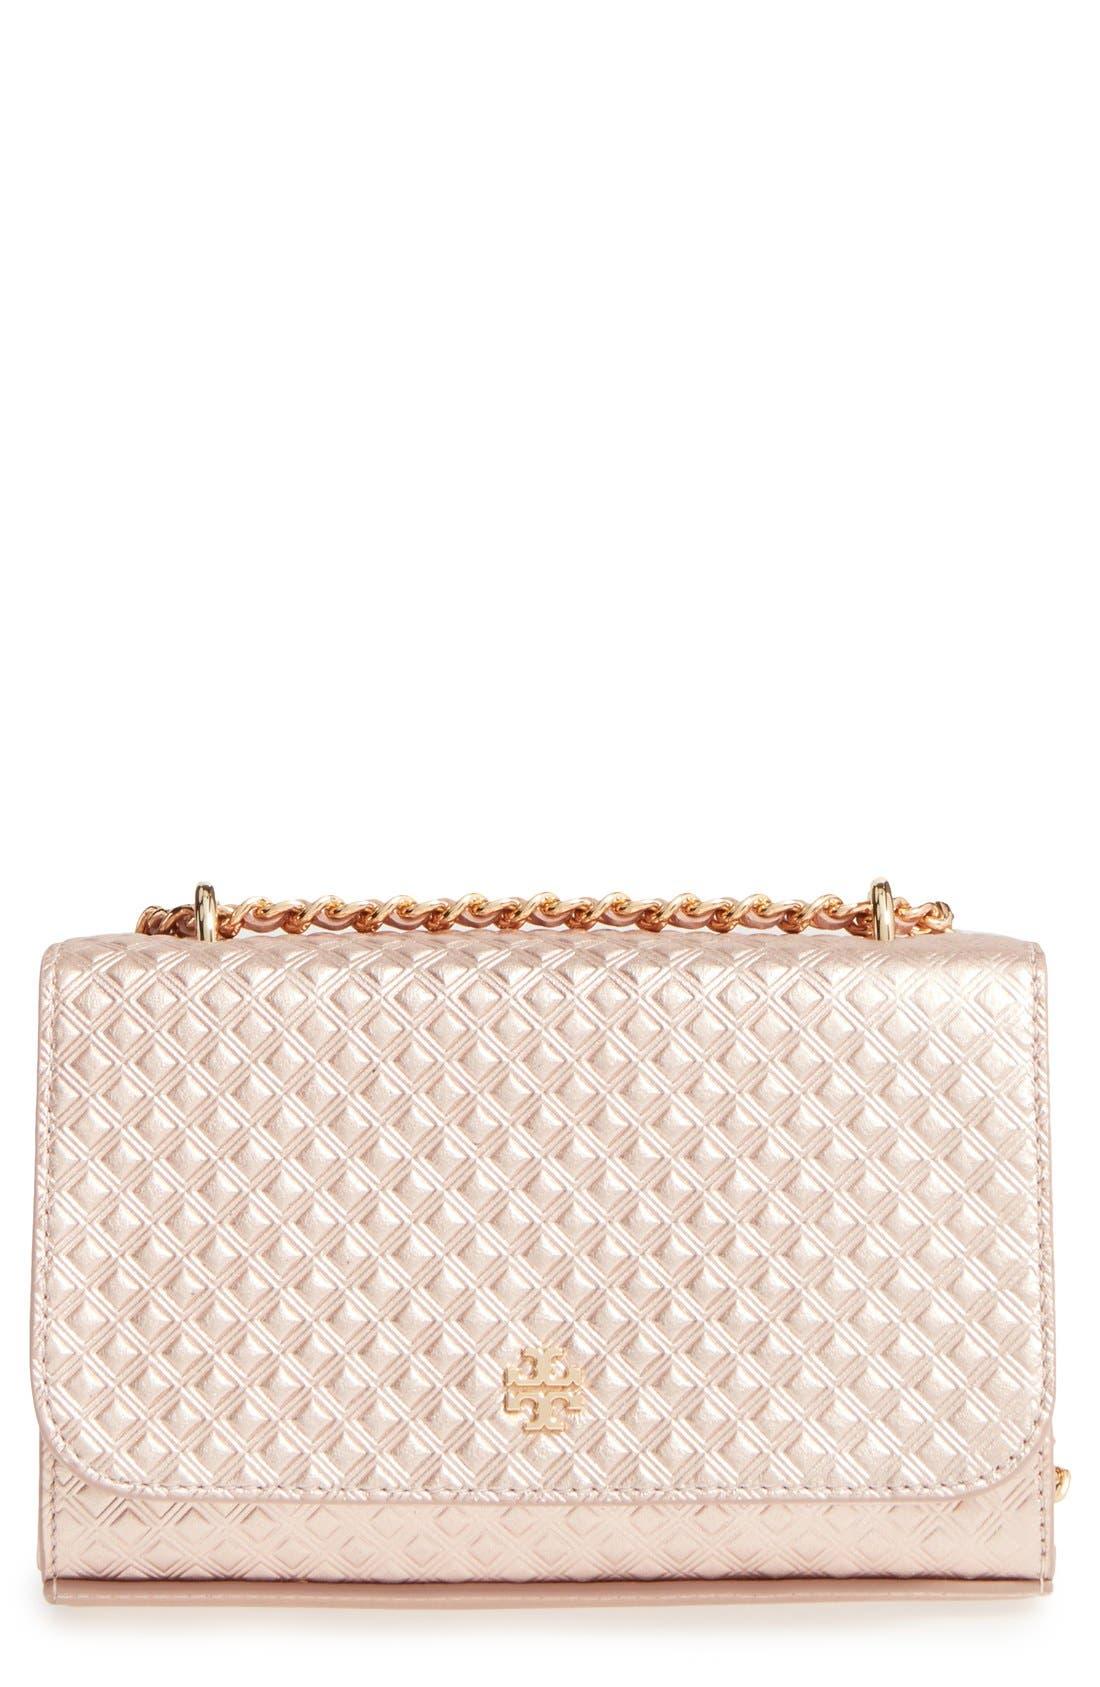 Alternate Image 1 Selected - Tory Burch Marion Embossed Leather Crossbody Bag